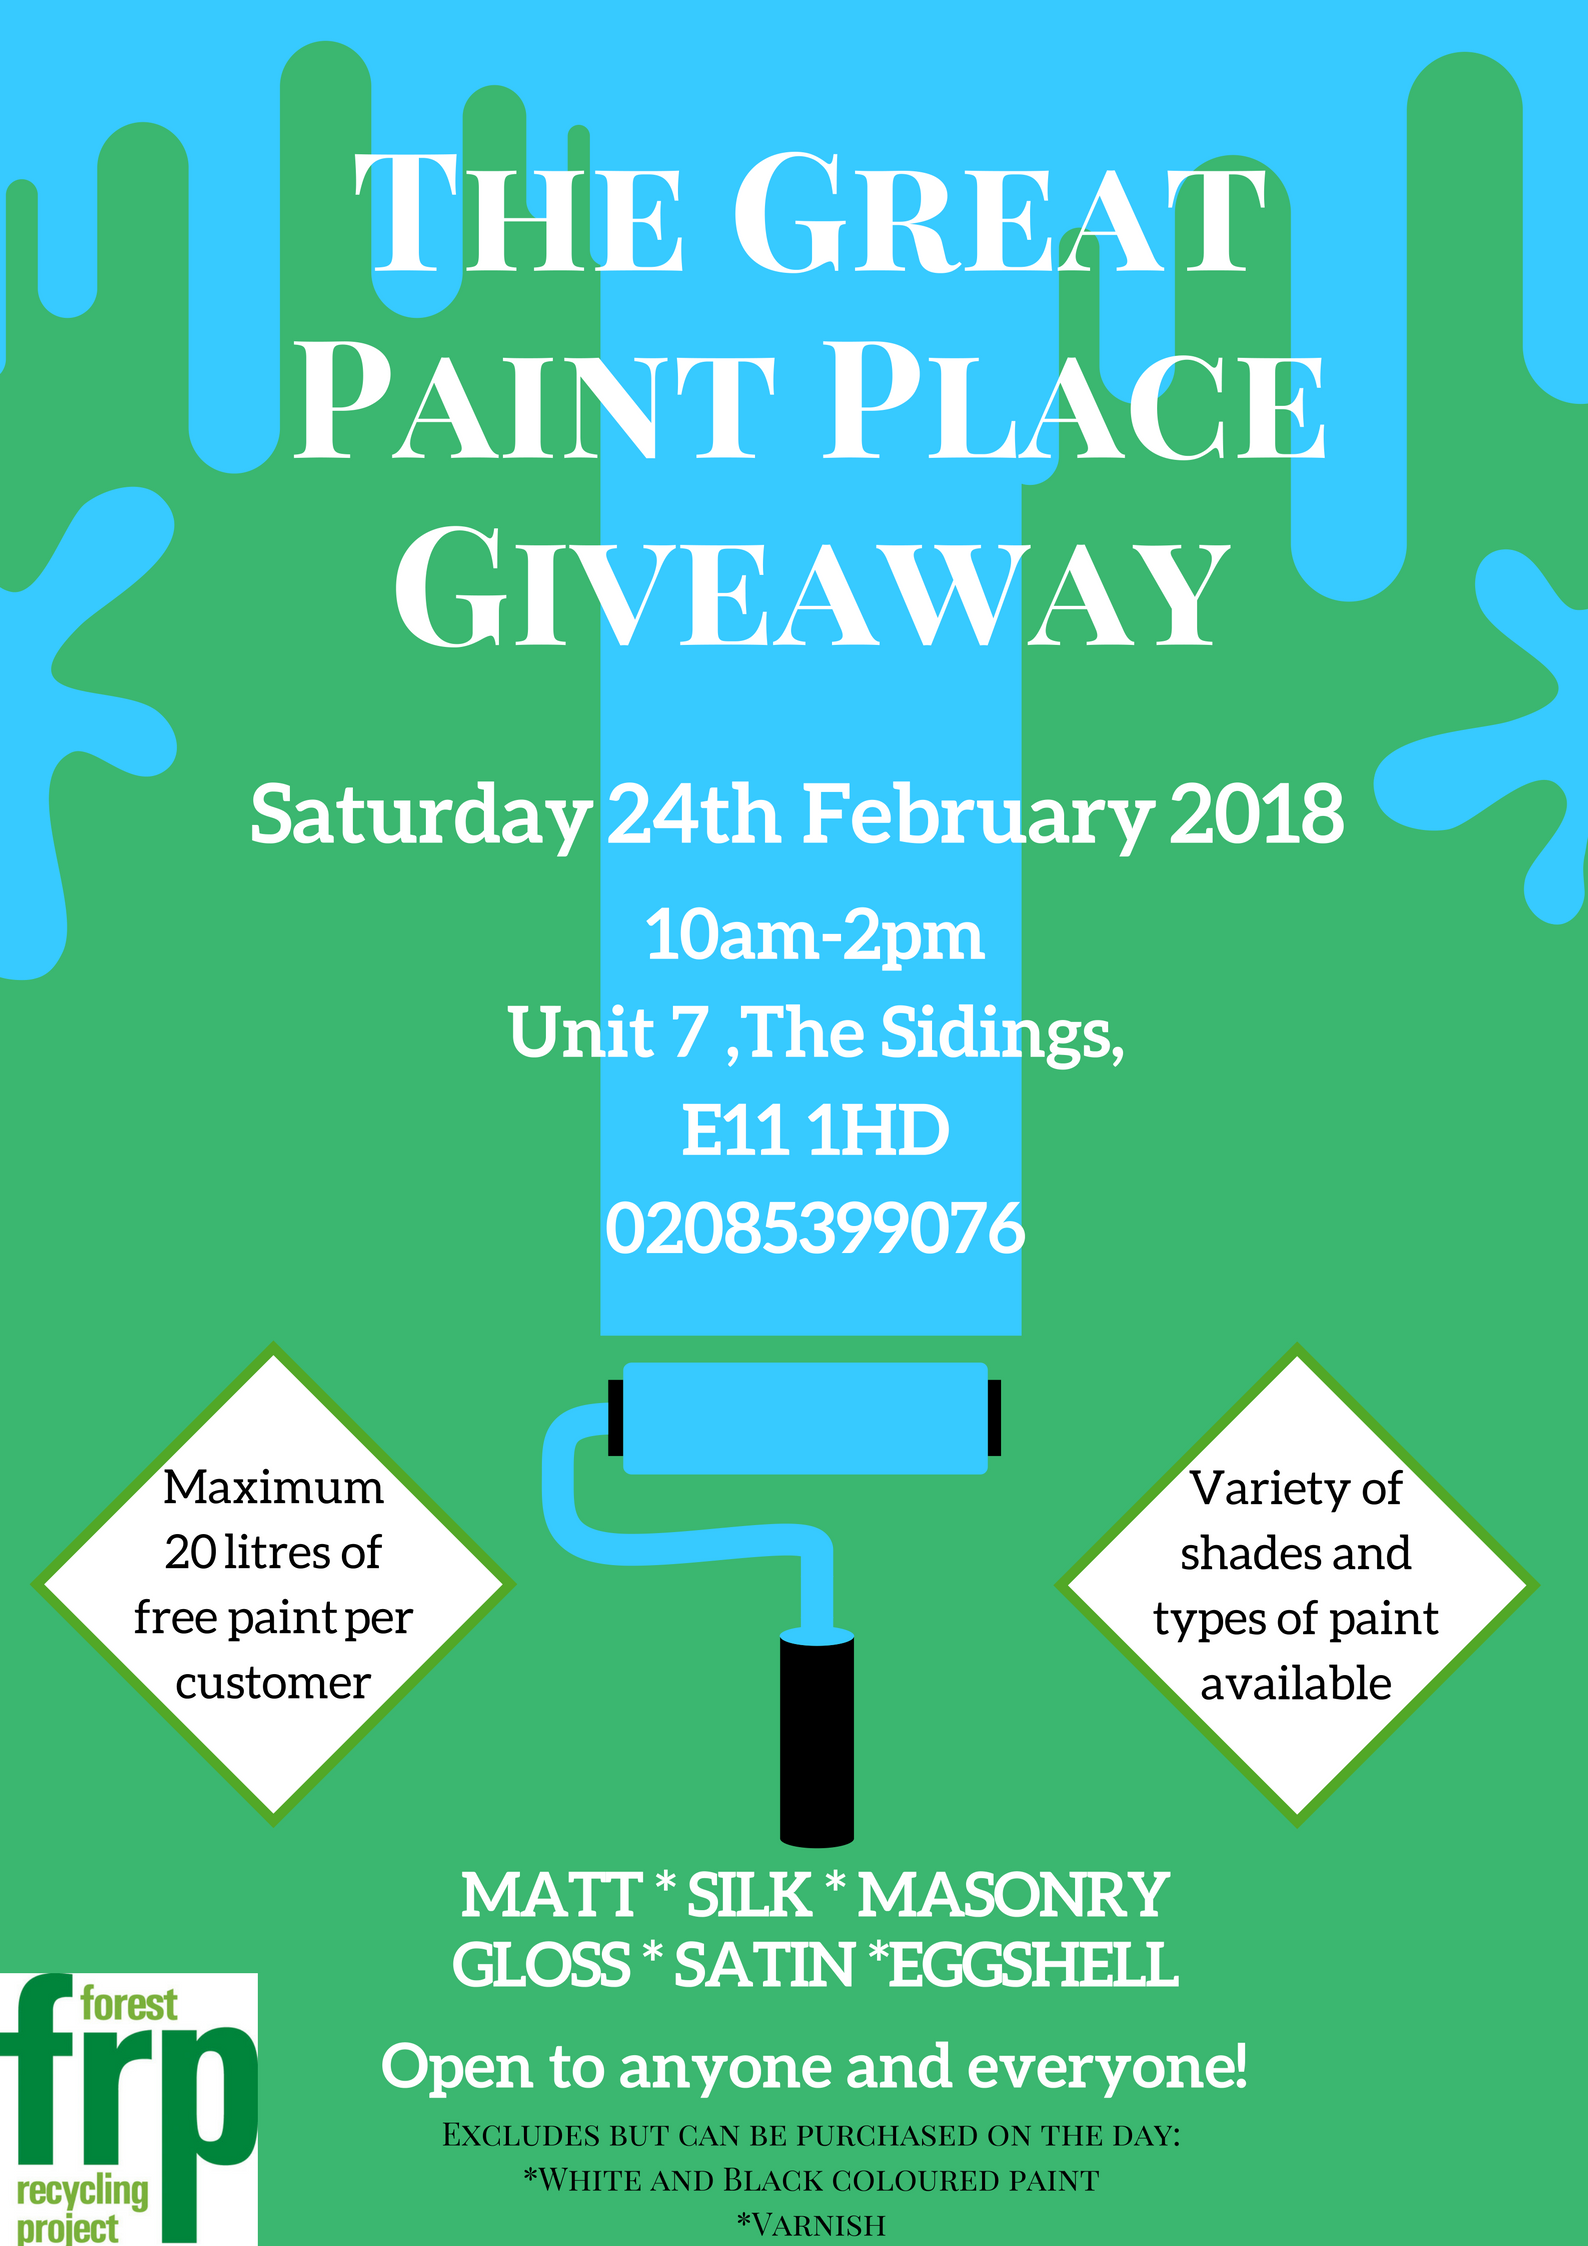 Great Paint Place Giveaway at Forest Recycling Project on 24 Feb